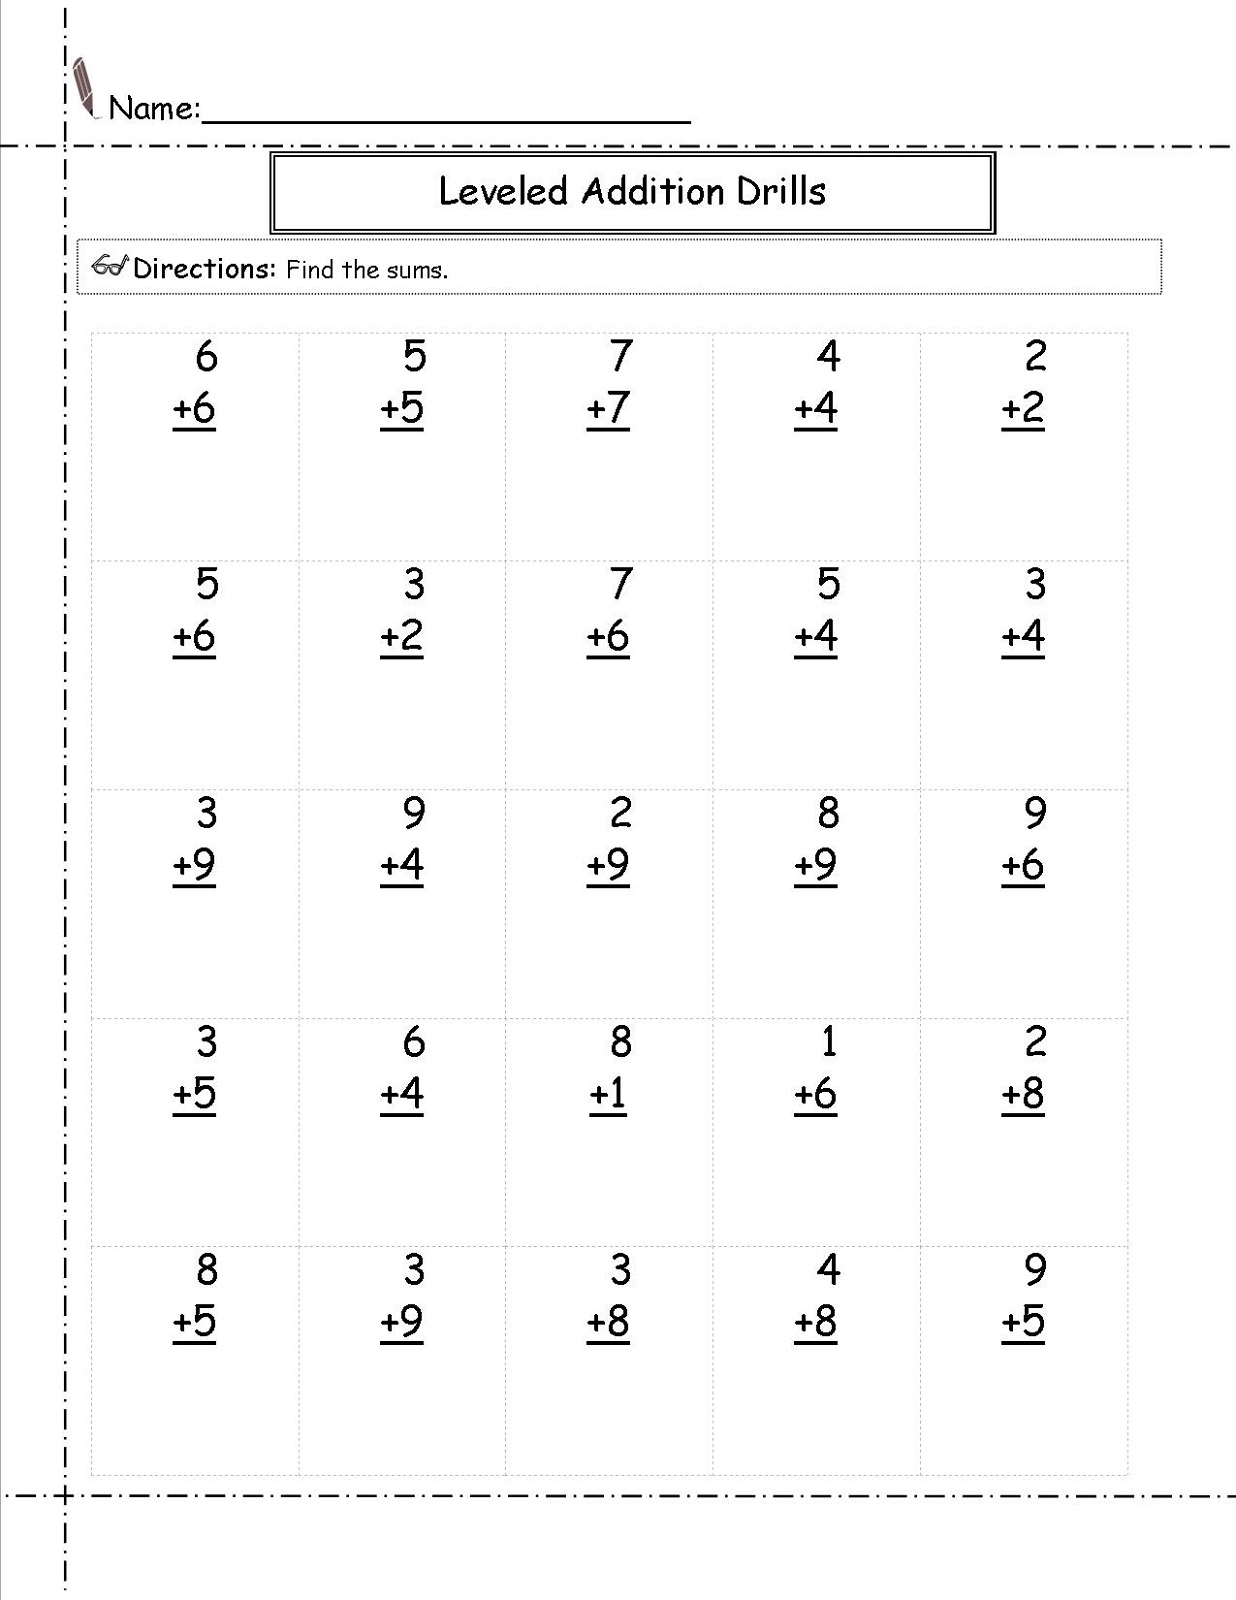 Worksheet Gr 1 Worksheets gr 1 math worksheets memarchoapraga for grade activity shelter